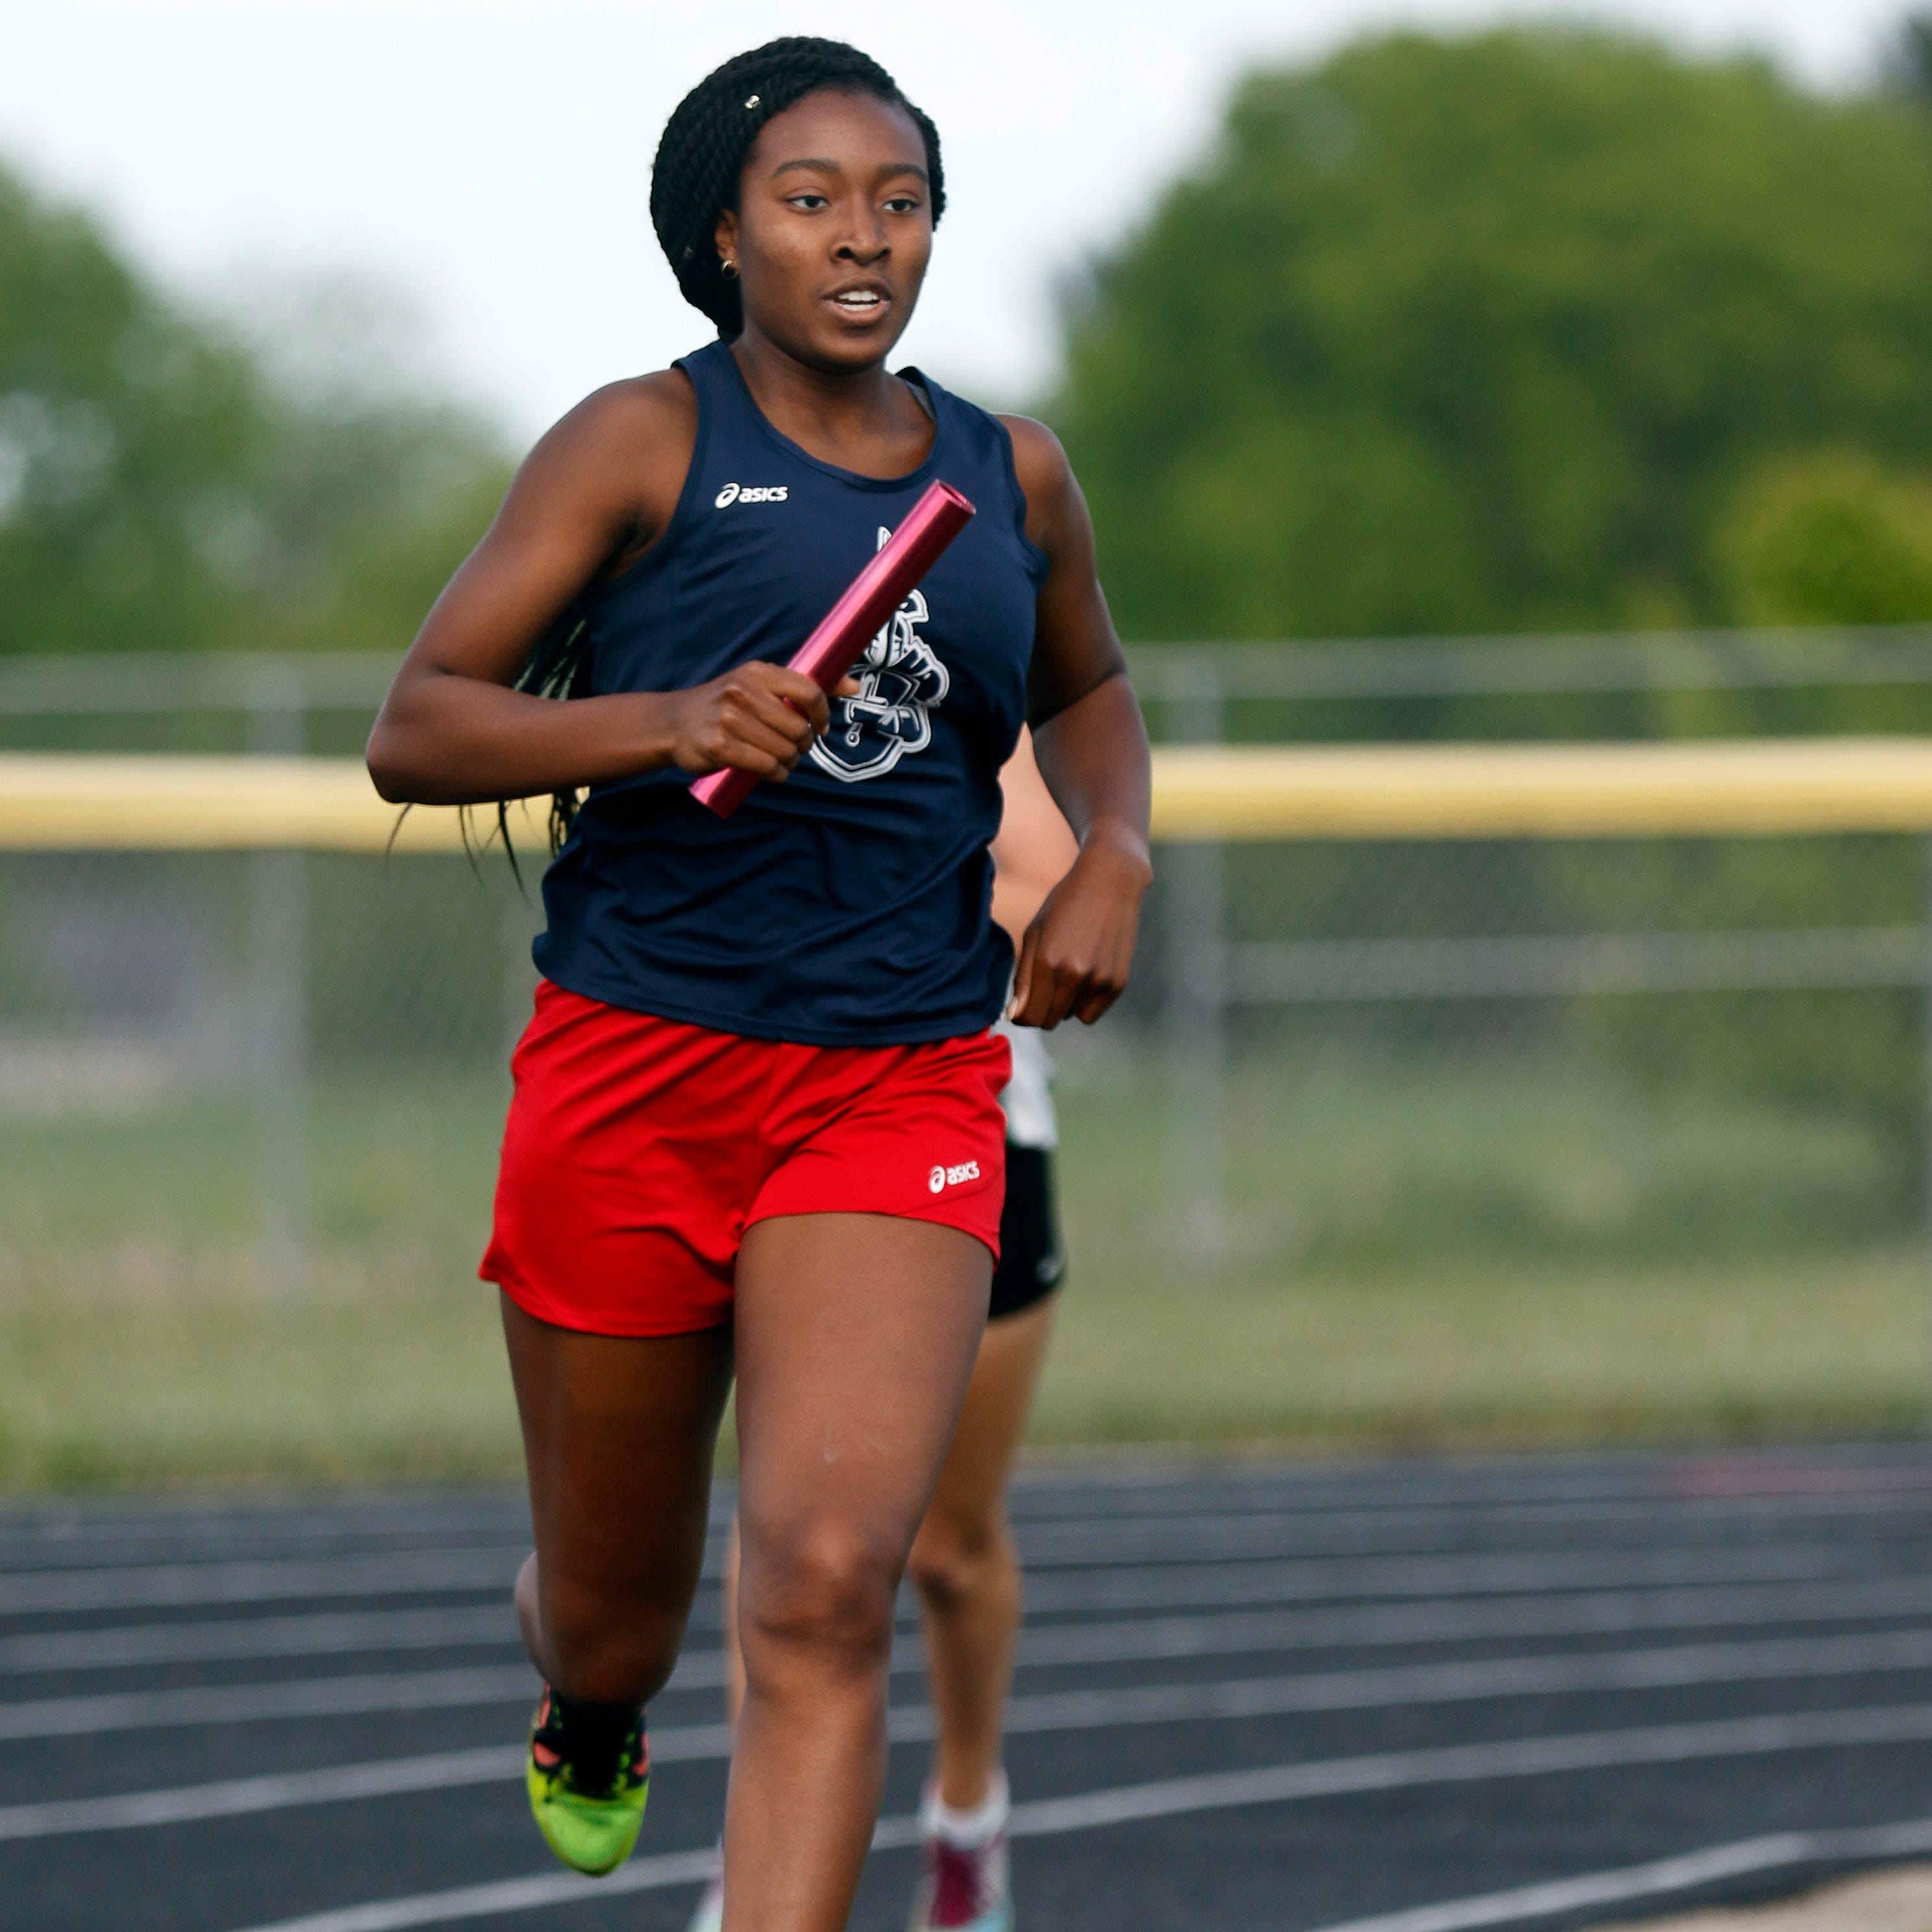 FCA's Maame Adu ends her busy high school career and looks forward to college